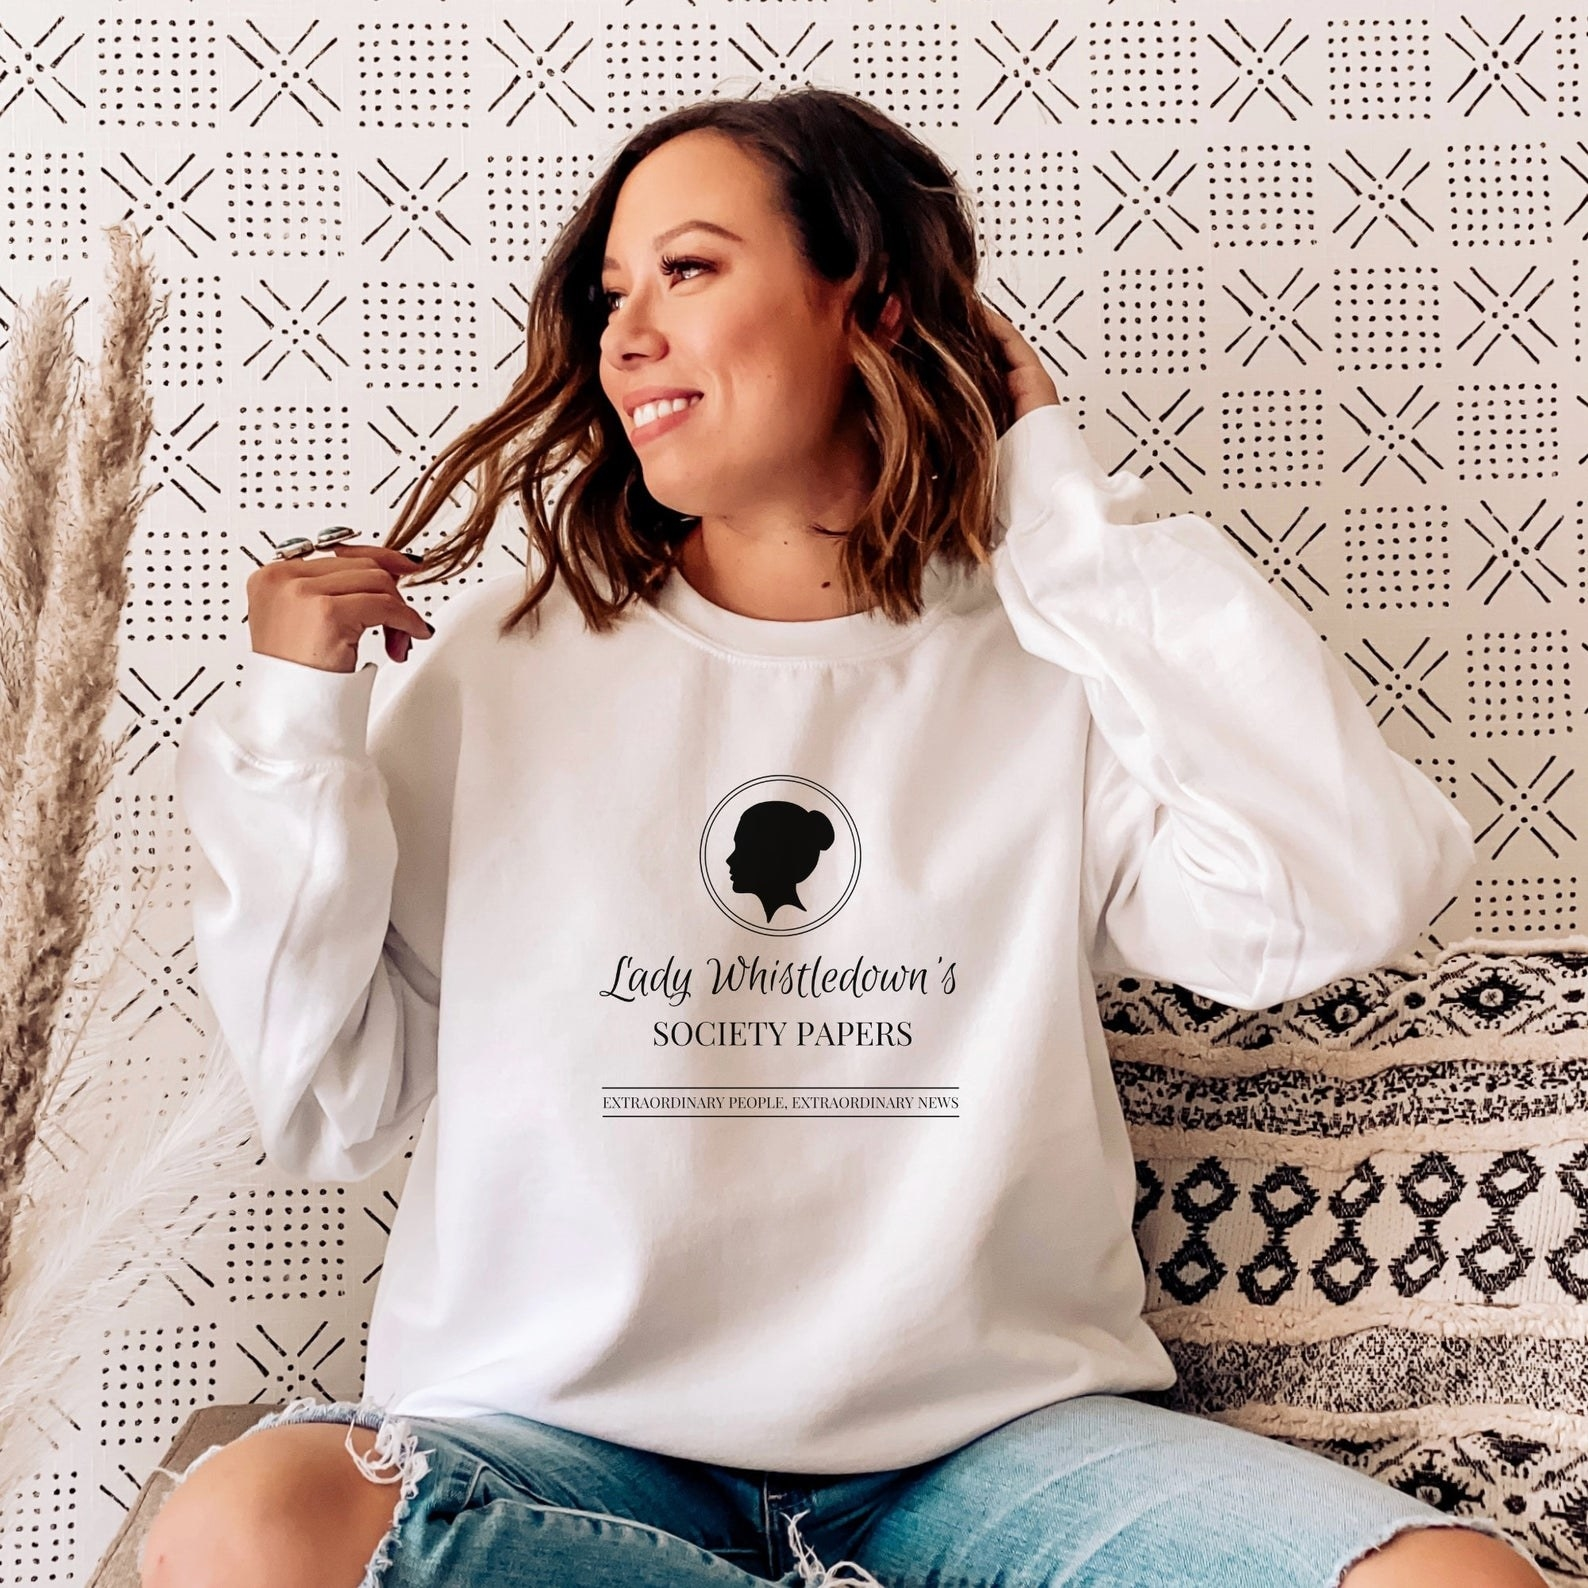 a model plays with their hair while wearing the lady whistledown's society papers sweatshirt in white